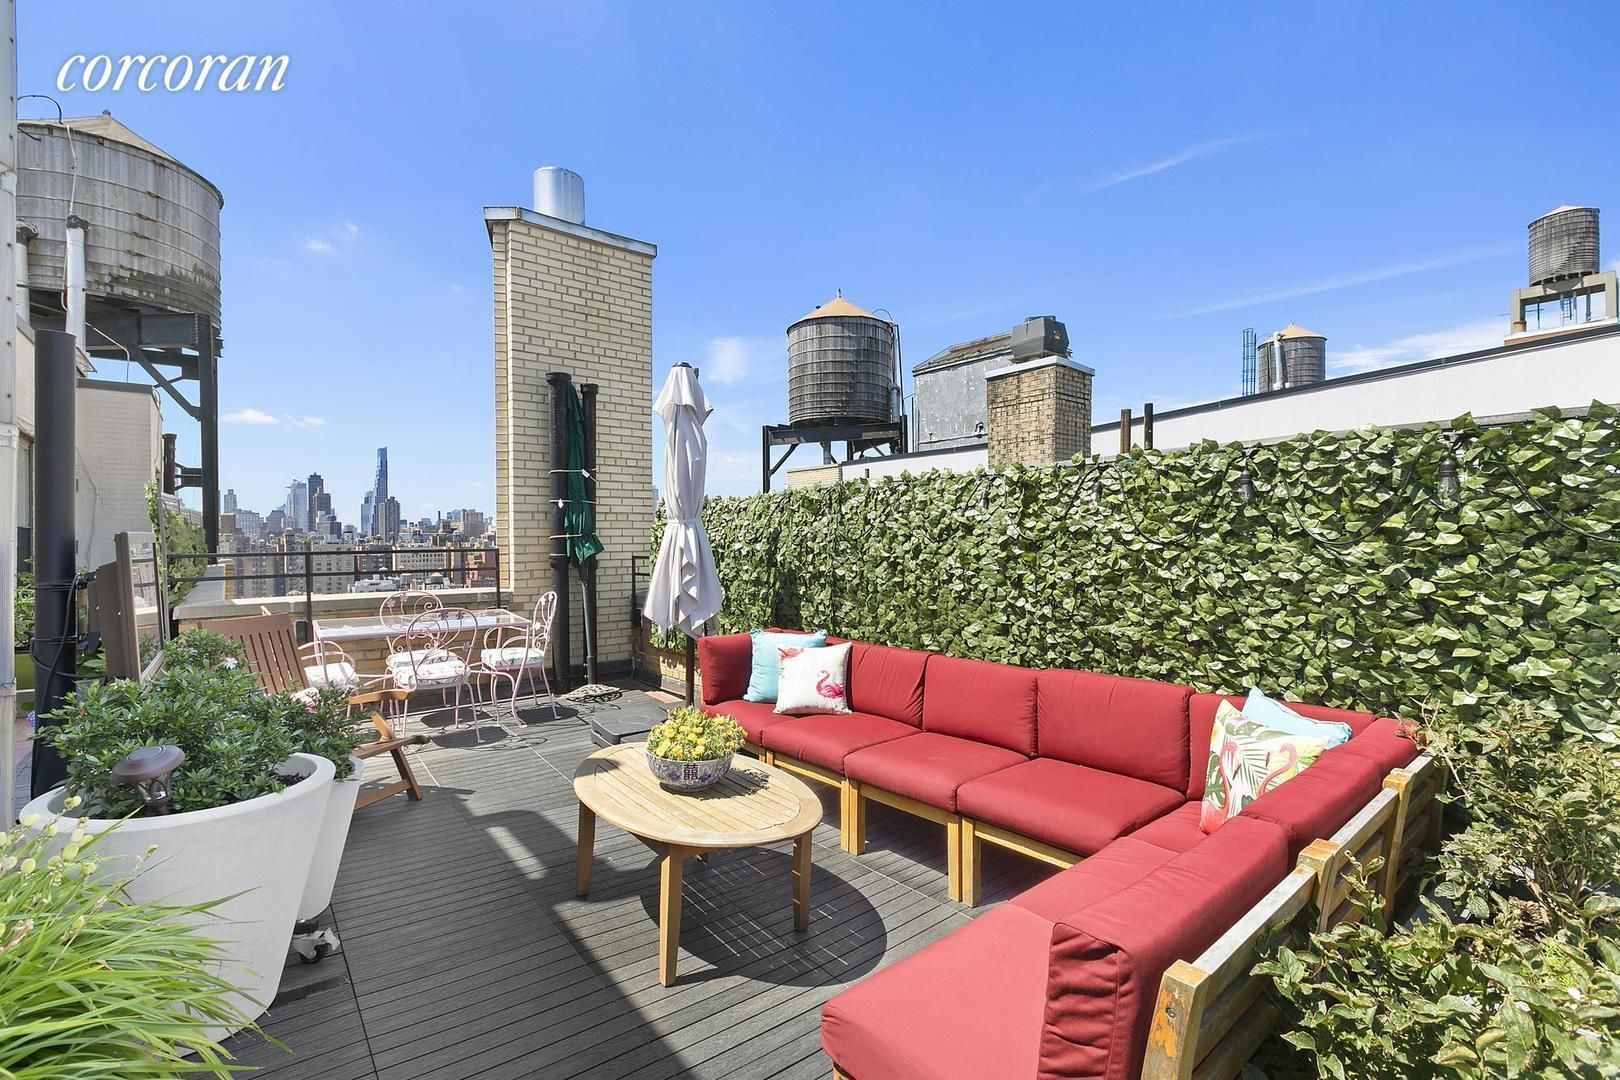 Apartment for sale at 130 West 86th Street, Apt 16A